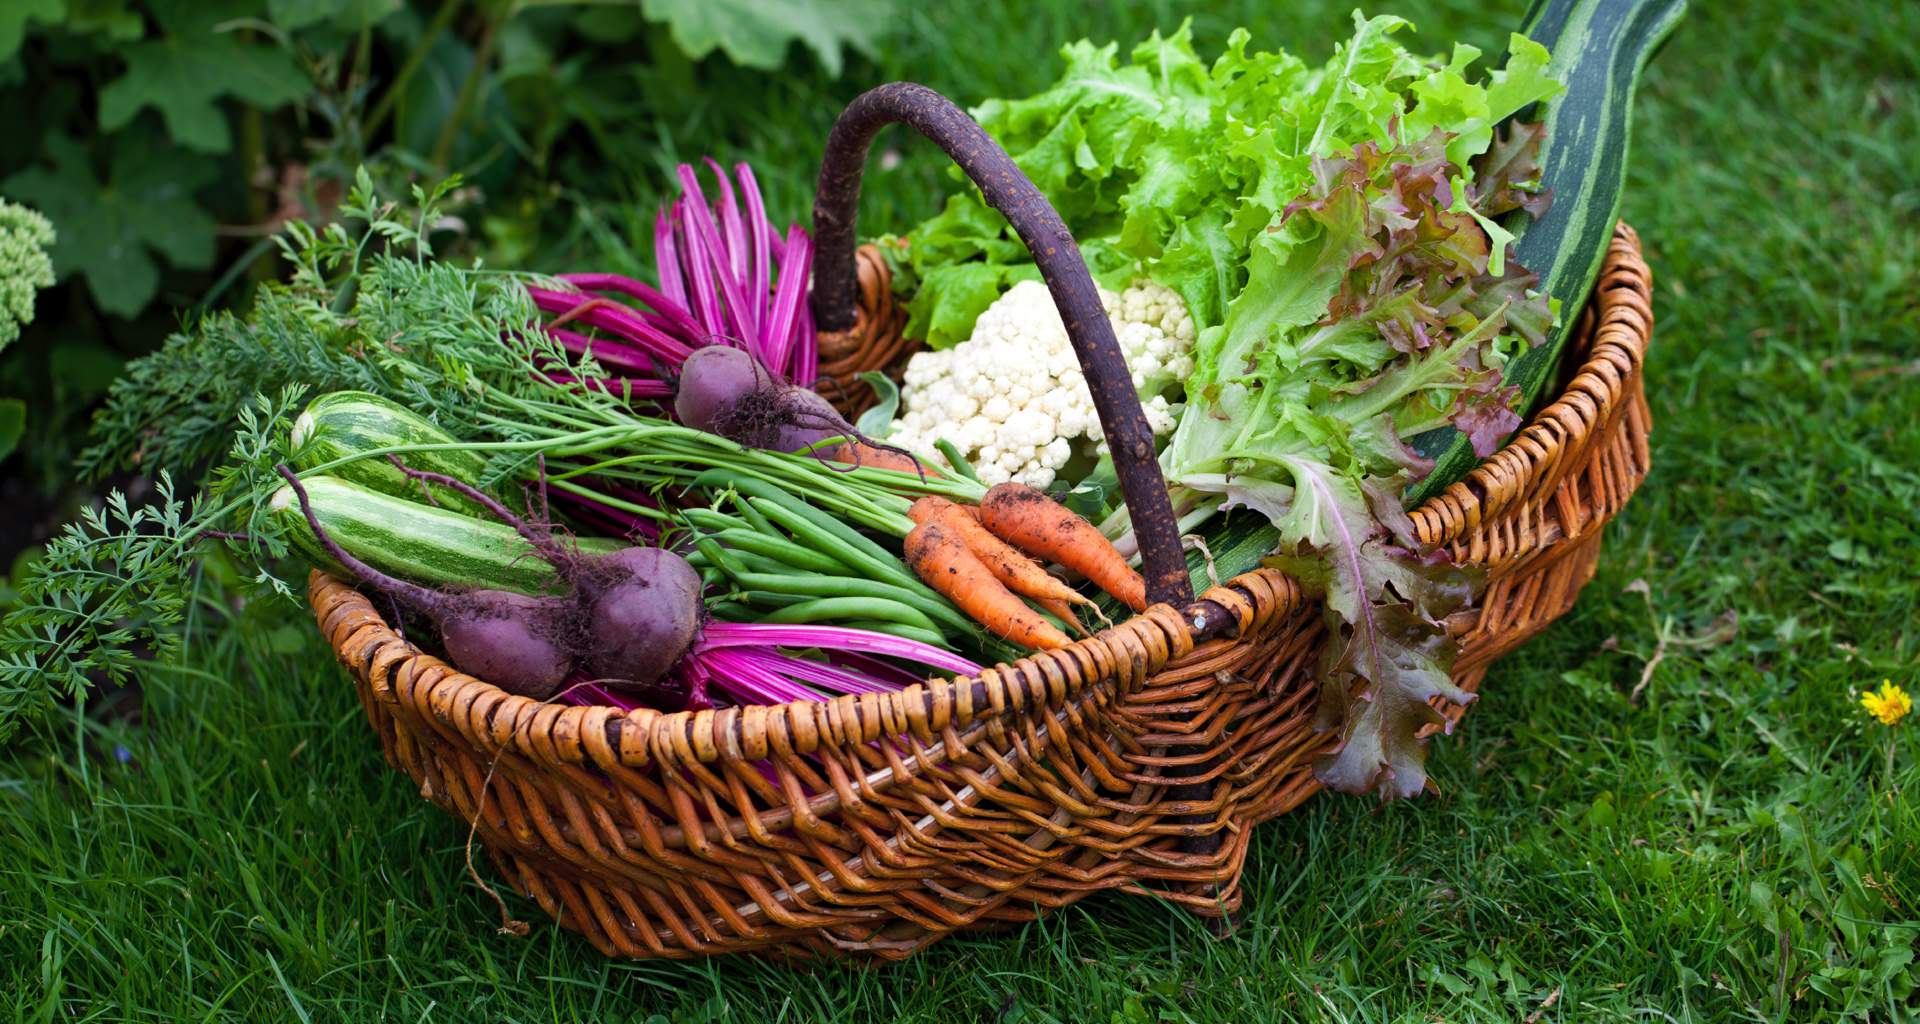 Wicker Basket Of Colourful Vegetables From Garden